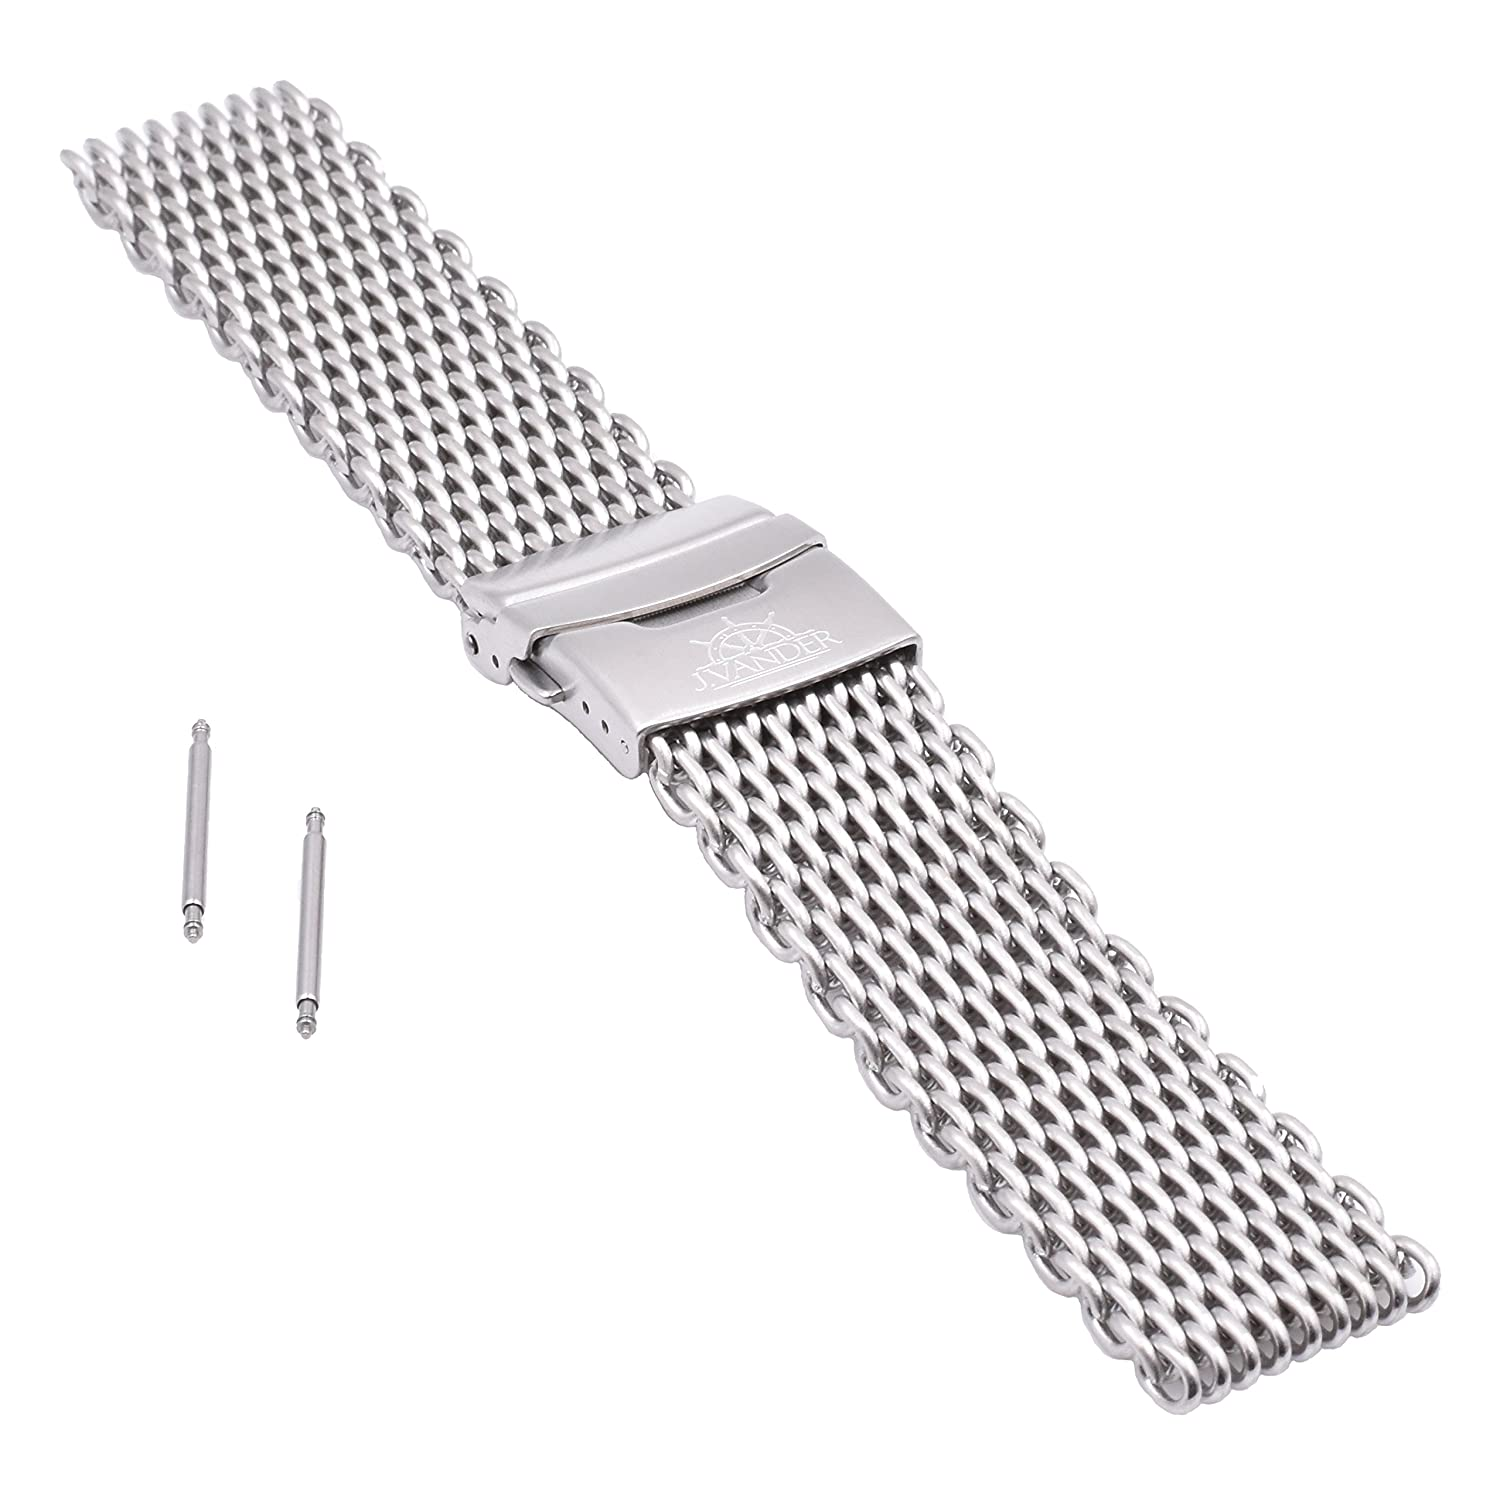 J.VANDER V.2 Milanese 316L Stainless Steel Shark Mesh Dive Watch Band Strap - Premium Clasp